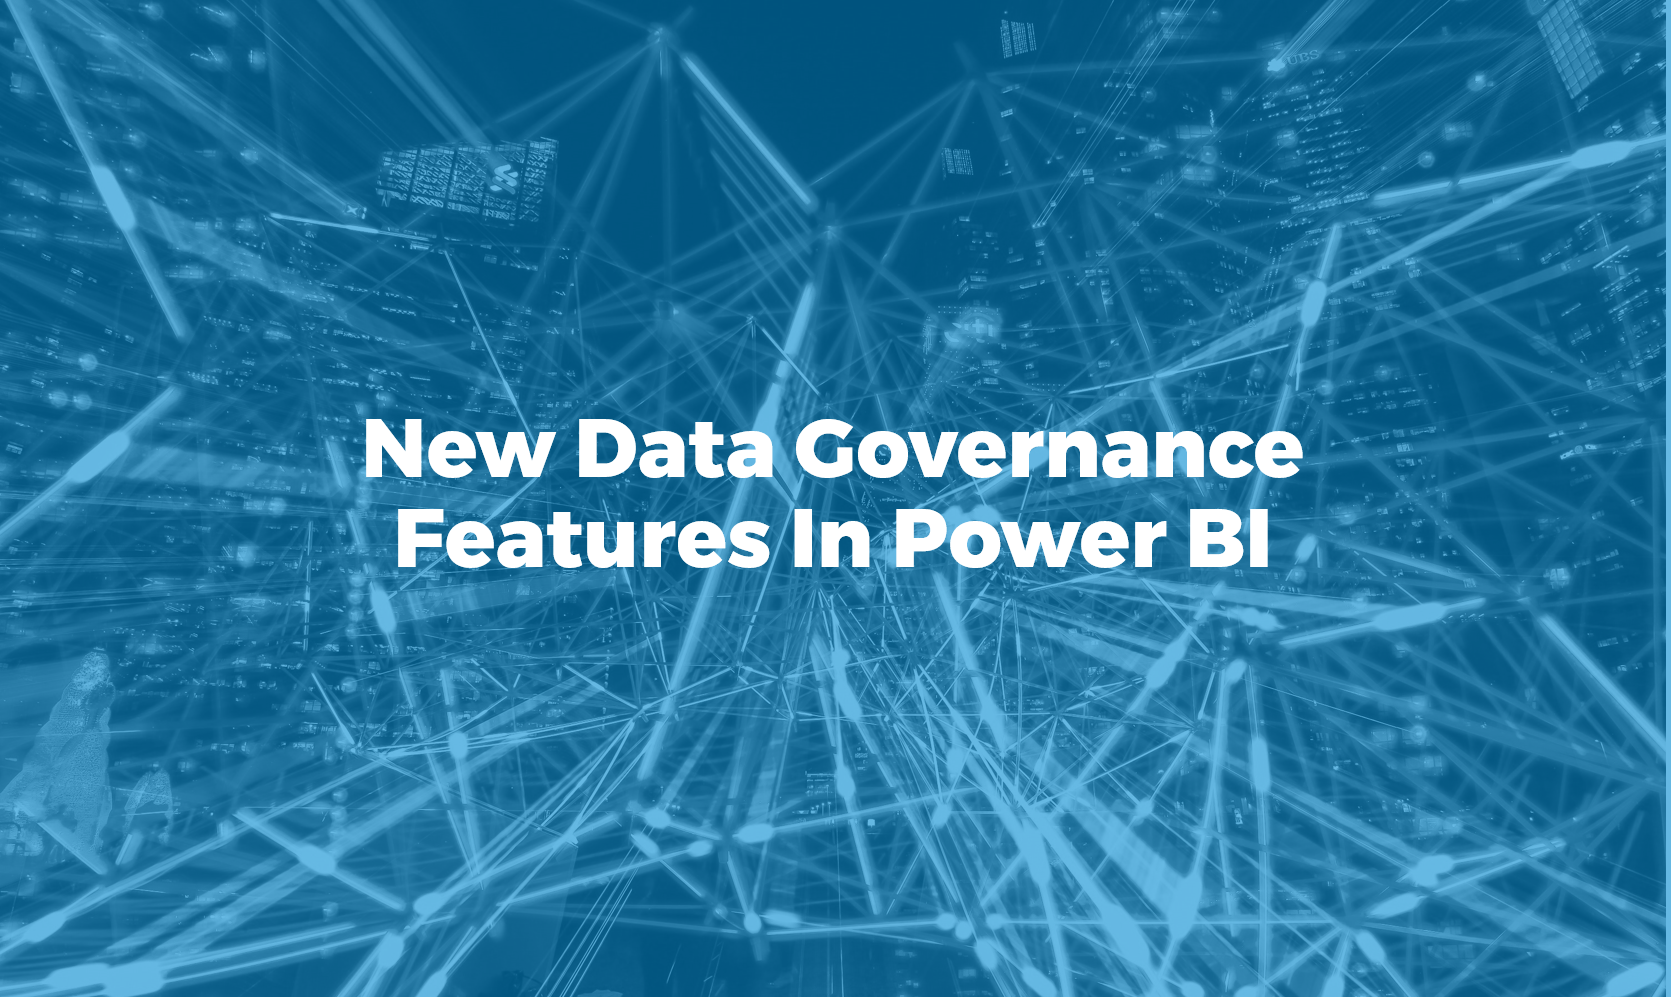 New Data Governance Features Power BI